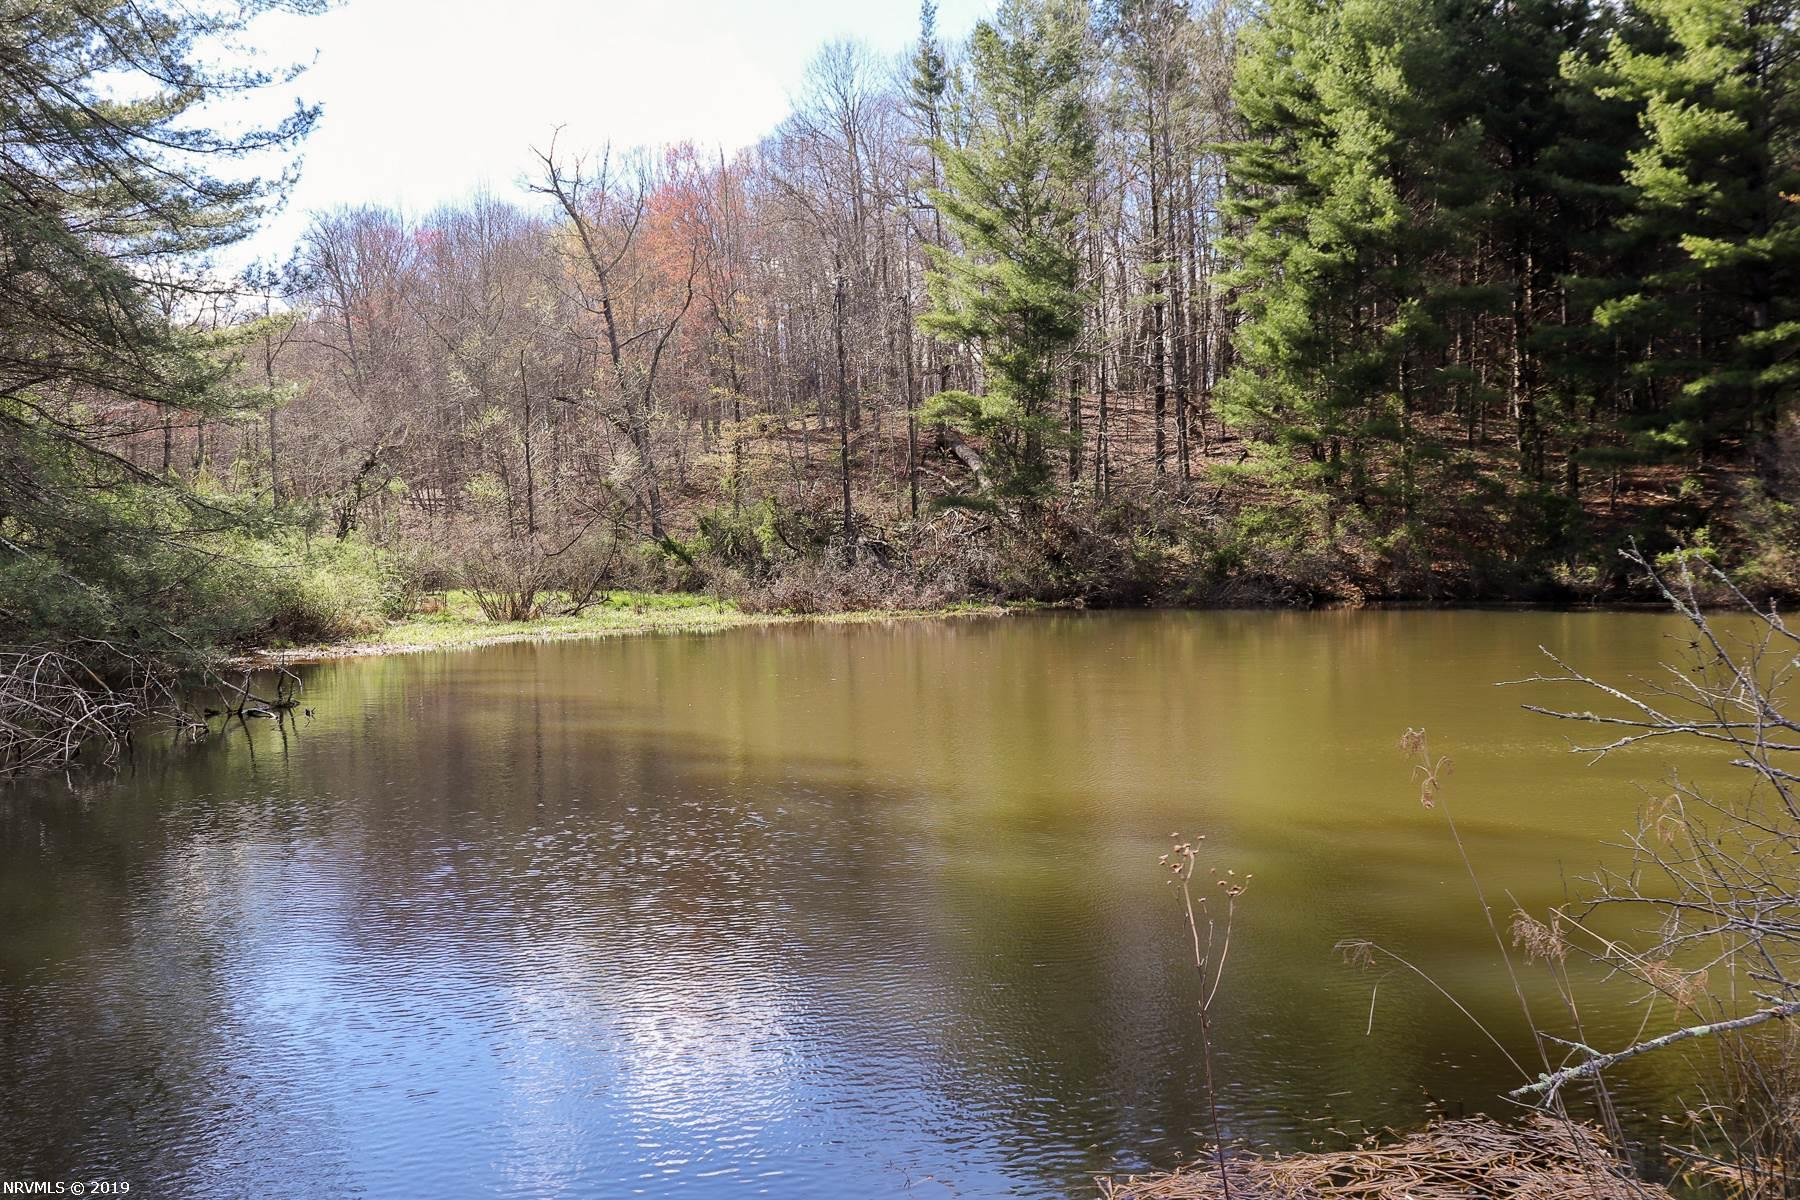 Stunning recreational retreat in Carroll County VA! 127.01 Acres of prime hunting land. The majority of the property is wooded but has a large open flat field with a stream running through. There is a little over 2300 ft of water frontage on West Fork Little Reed Island Creek. This stream is stocked and perfect for trout fishing. Head up the gravel driveway to the beautiful cabin which was hand built by the current owner around 20 years ago. The home has 2 bedrooms and a loft. Also has 2 full baths. Big open area with large windows which provide an abundance of natural light. There is a full unfinished basement, perfect for storage and hunting equipment. Property continues up the mountain w/ trails for ATV's. Killer view up on top as well. Don't miss your opportunity for this amazing place